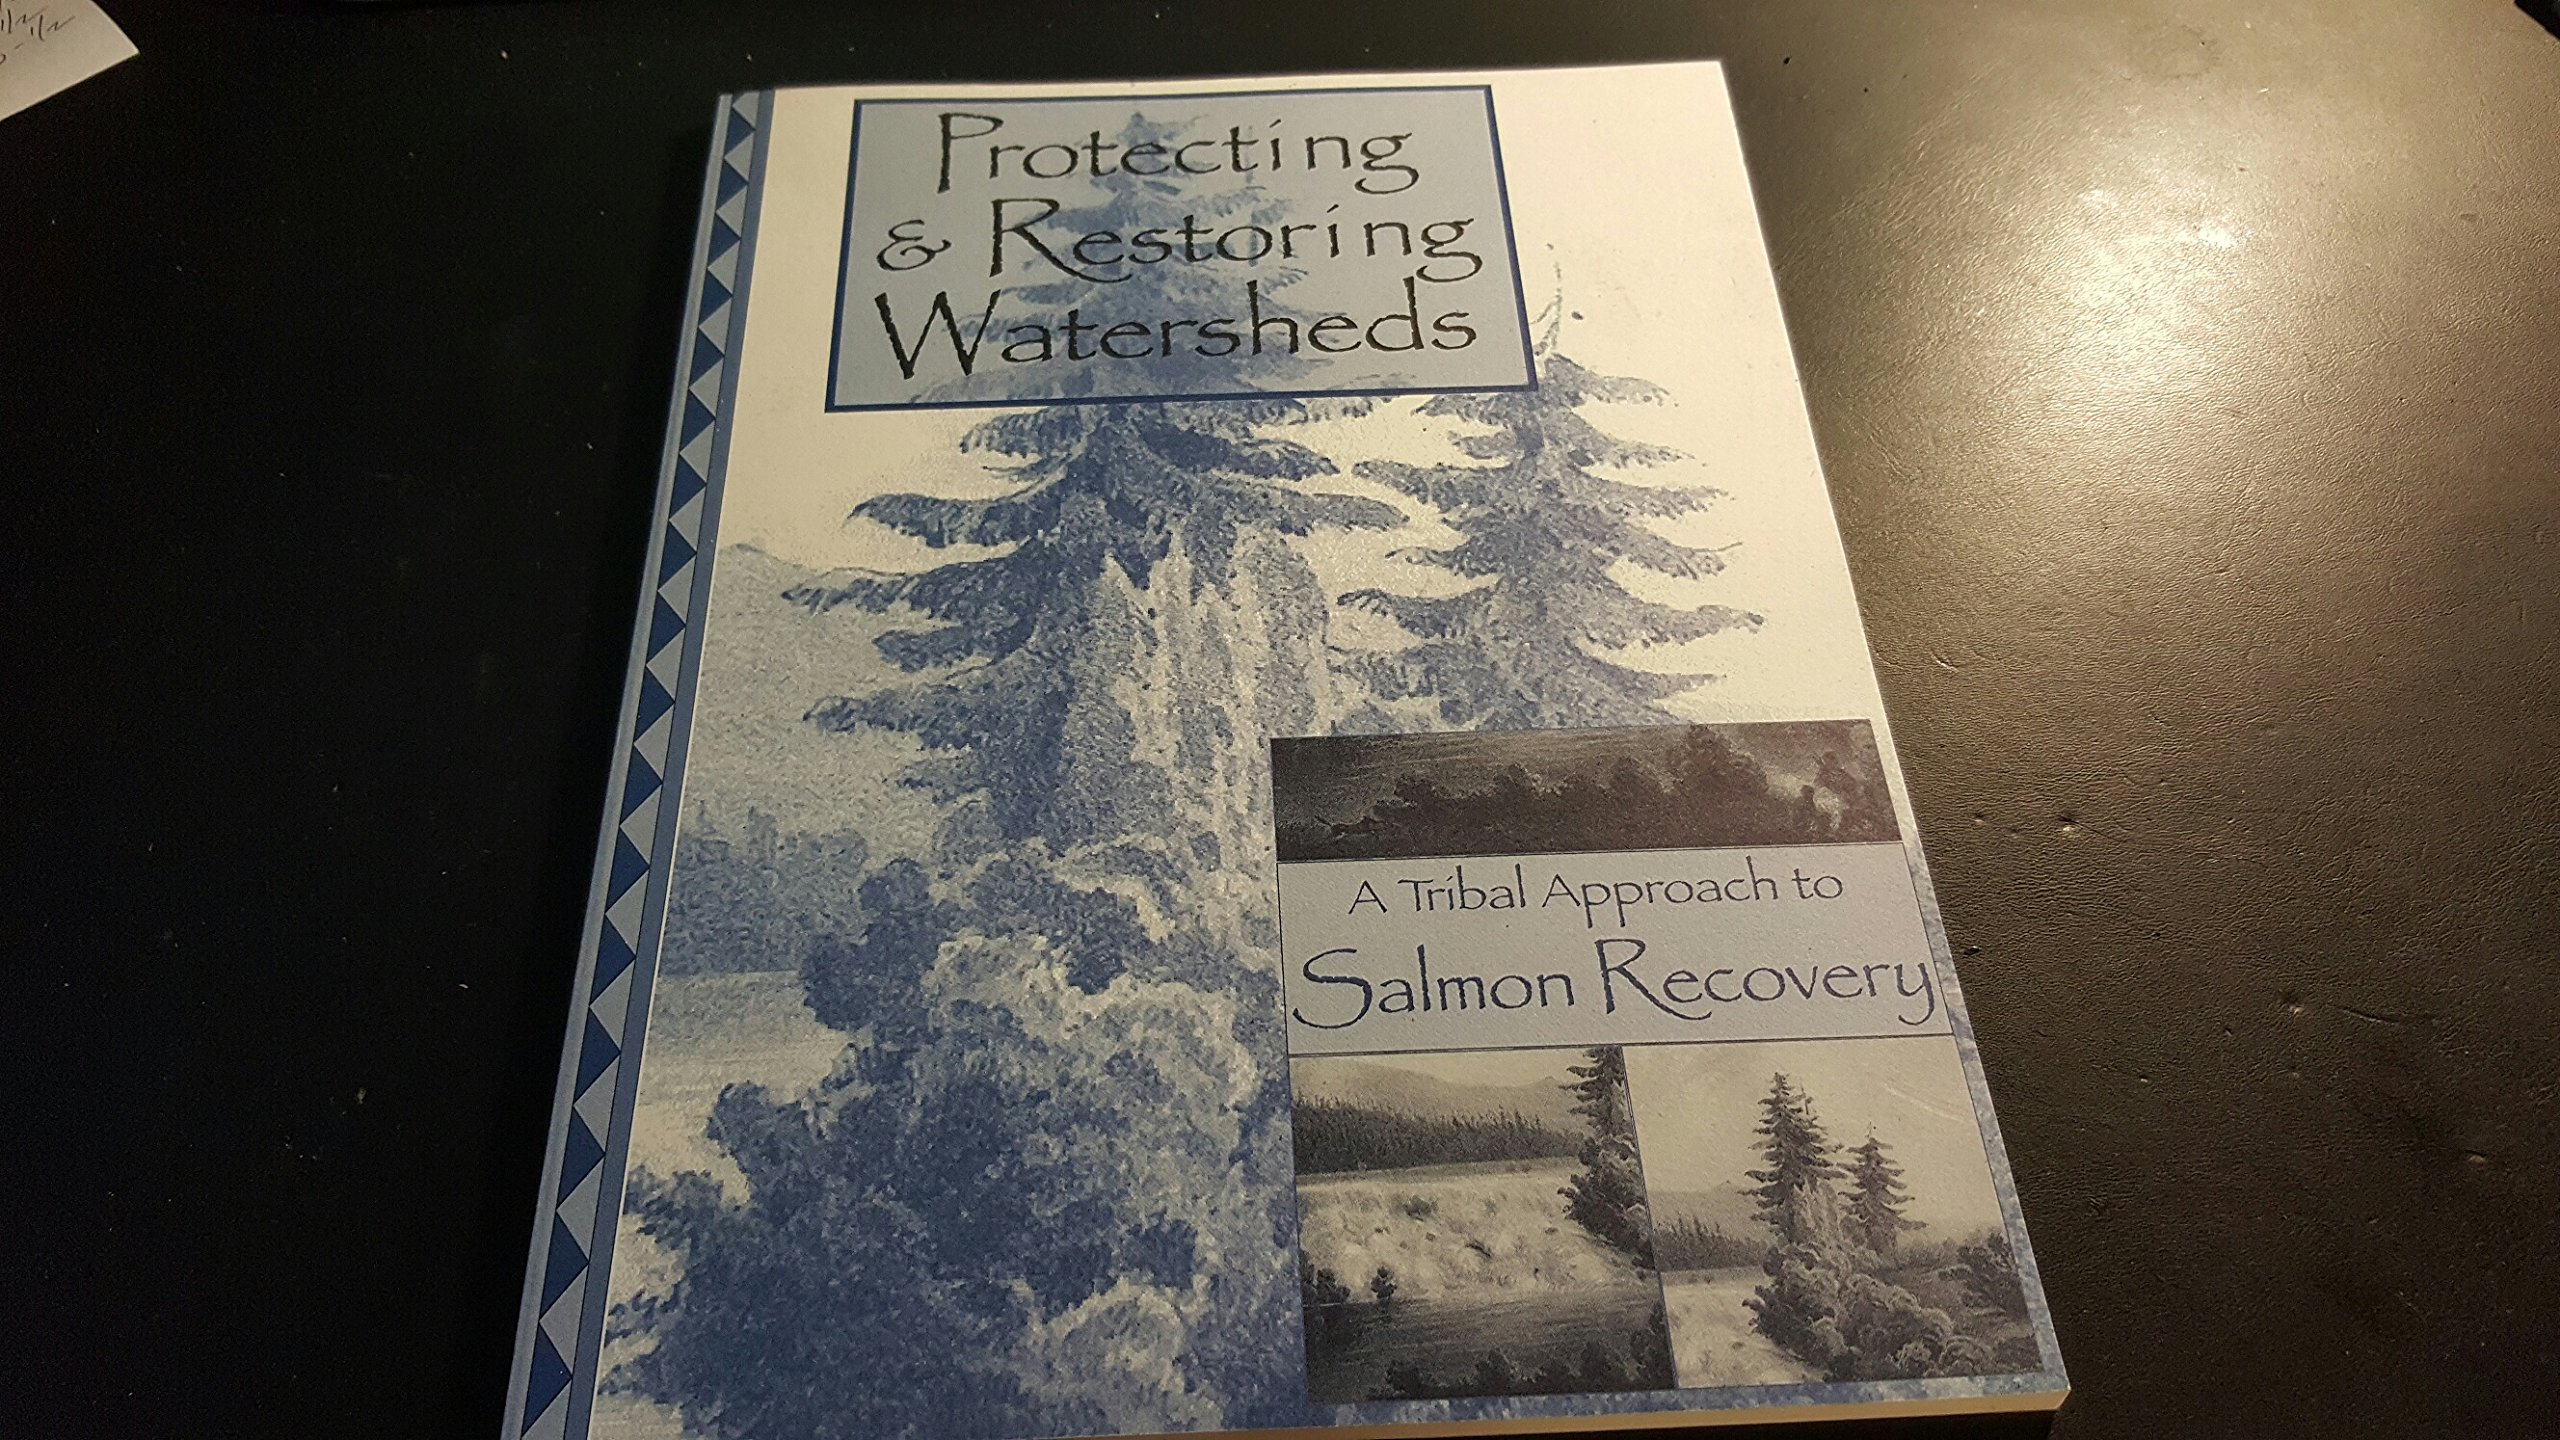 Protecting & Restoring Watersheds; A Tribal Approach to Salmon Recovery, Hollenbach Margaret, Jill Ory